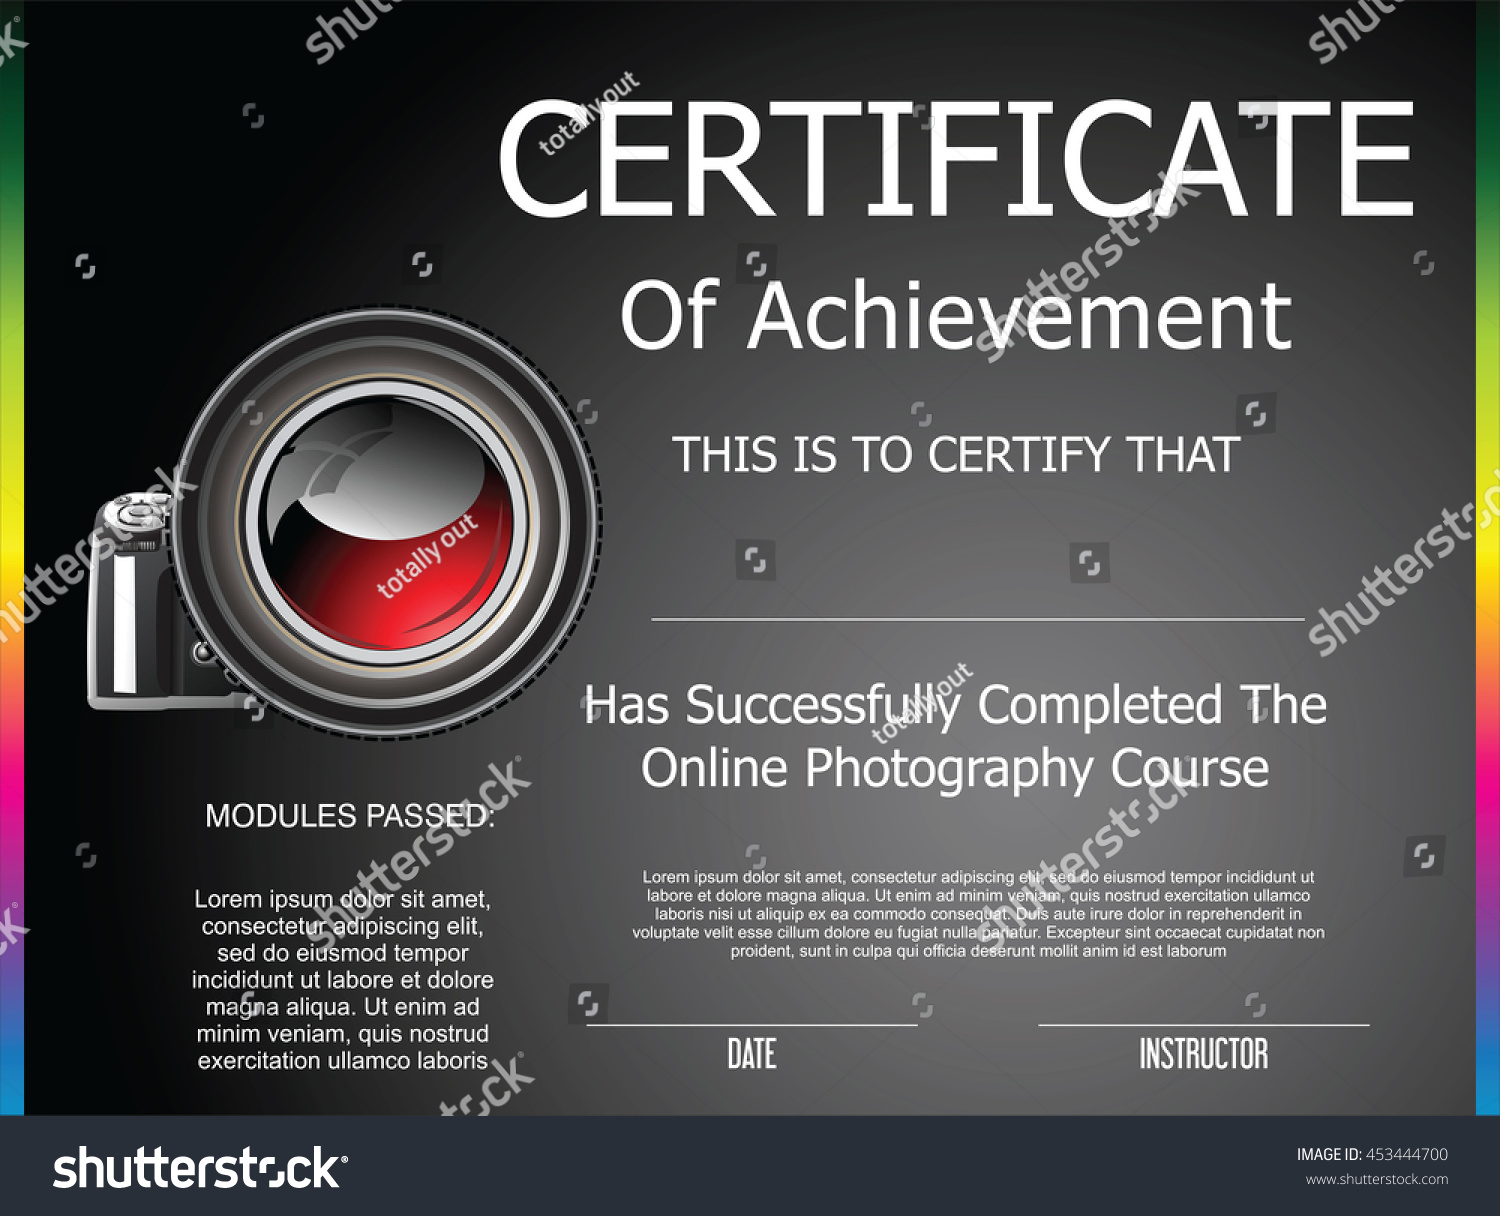 Certificate achievement online photography course stock vector certificate of achievement for online photography course 1betcityfo Gallery